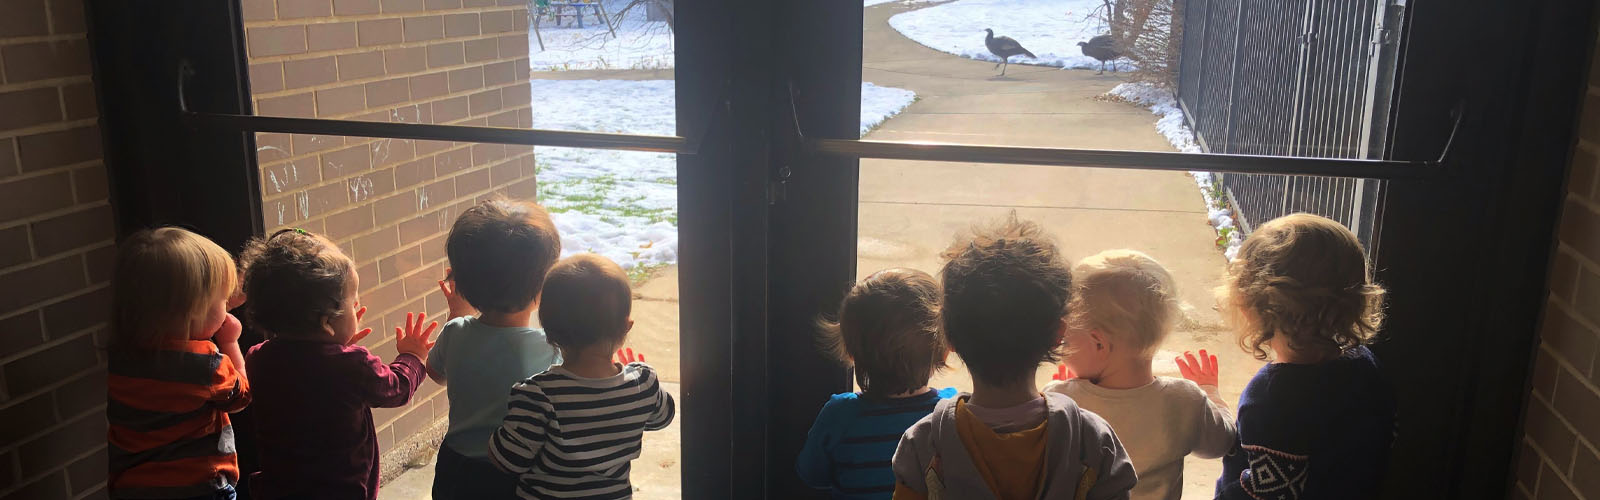 group of children looking outside at the turkeys